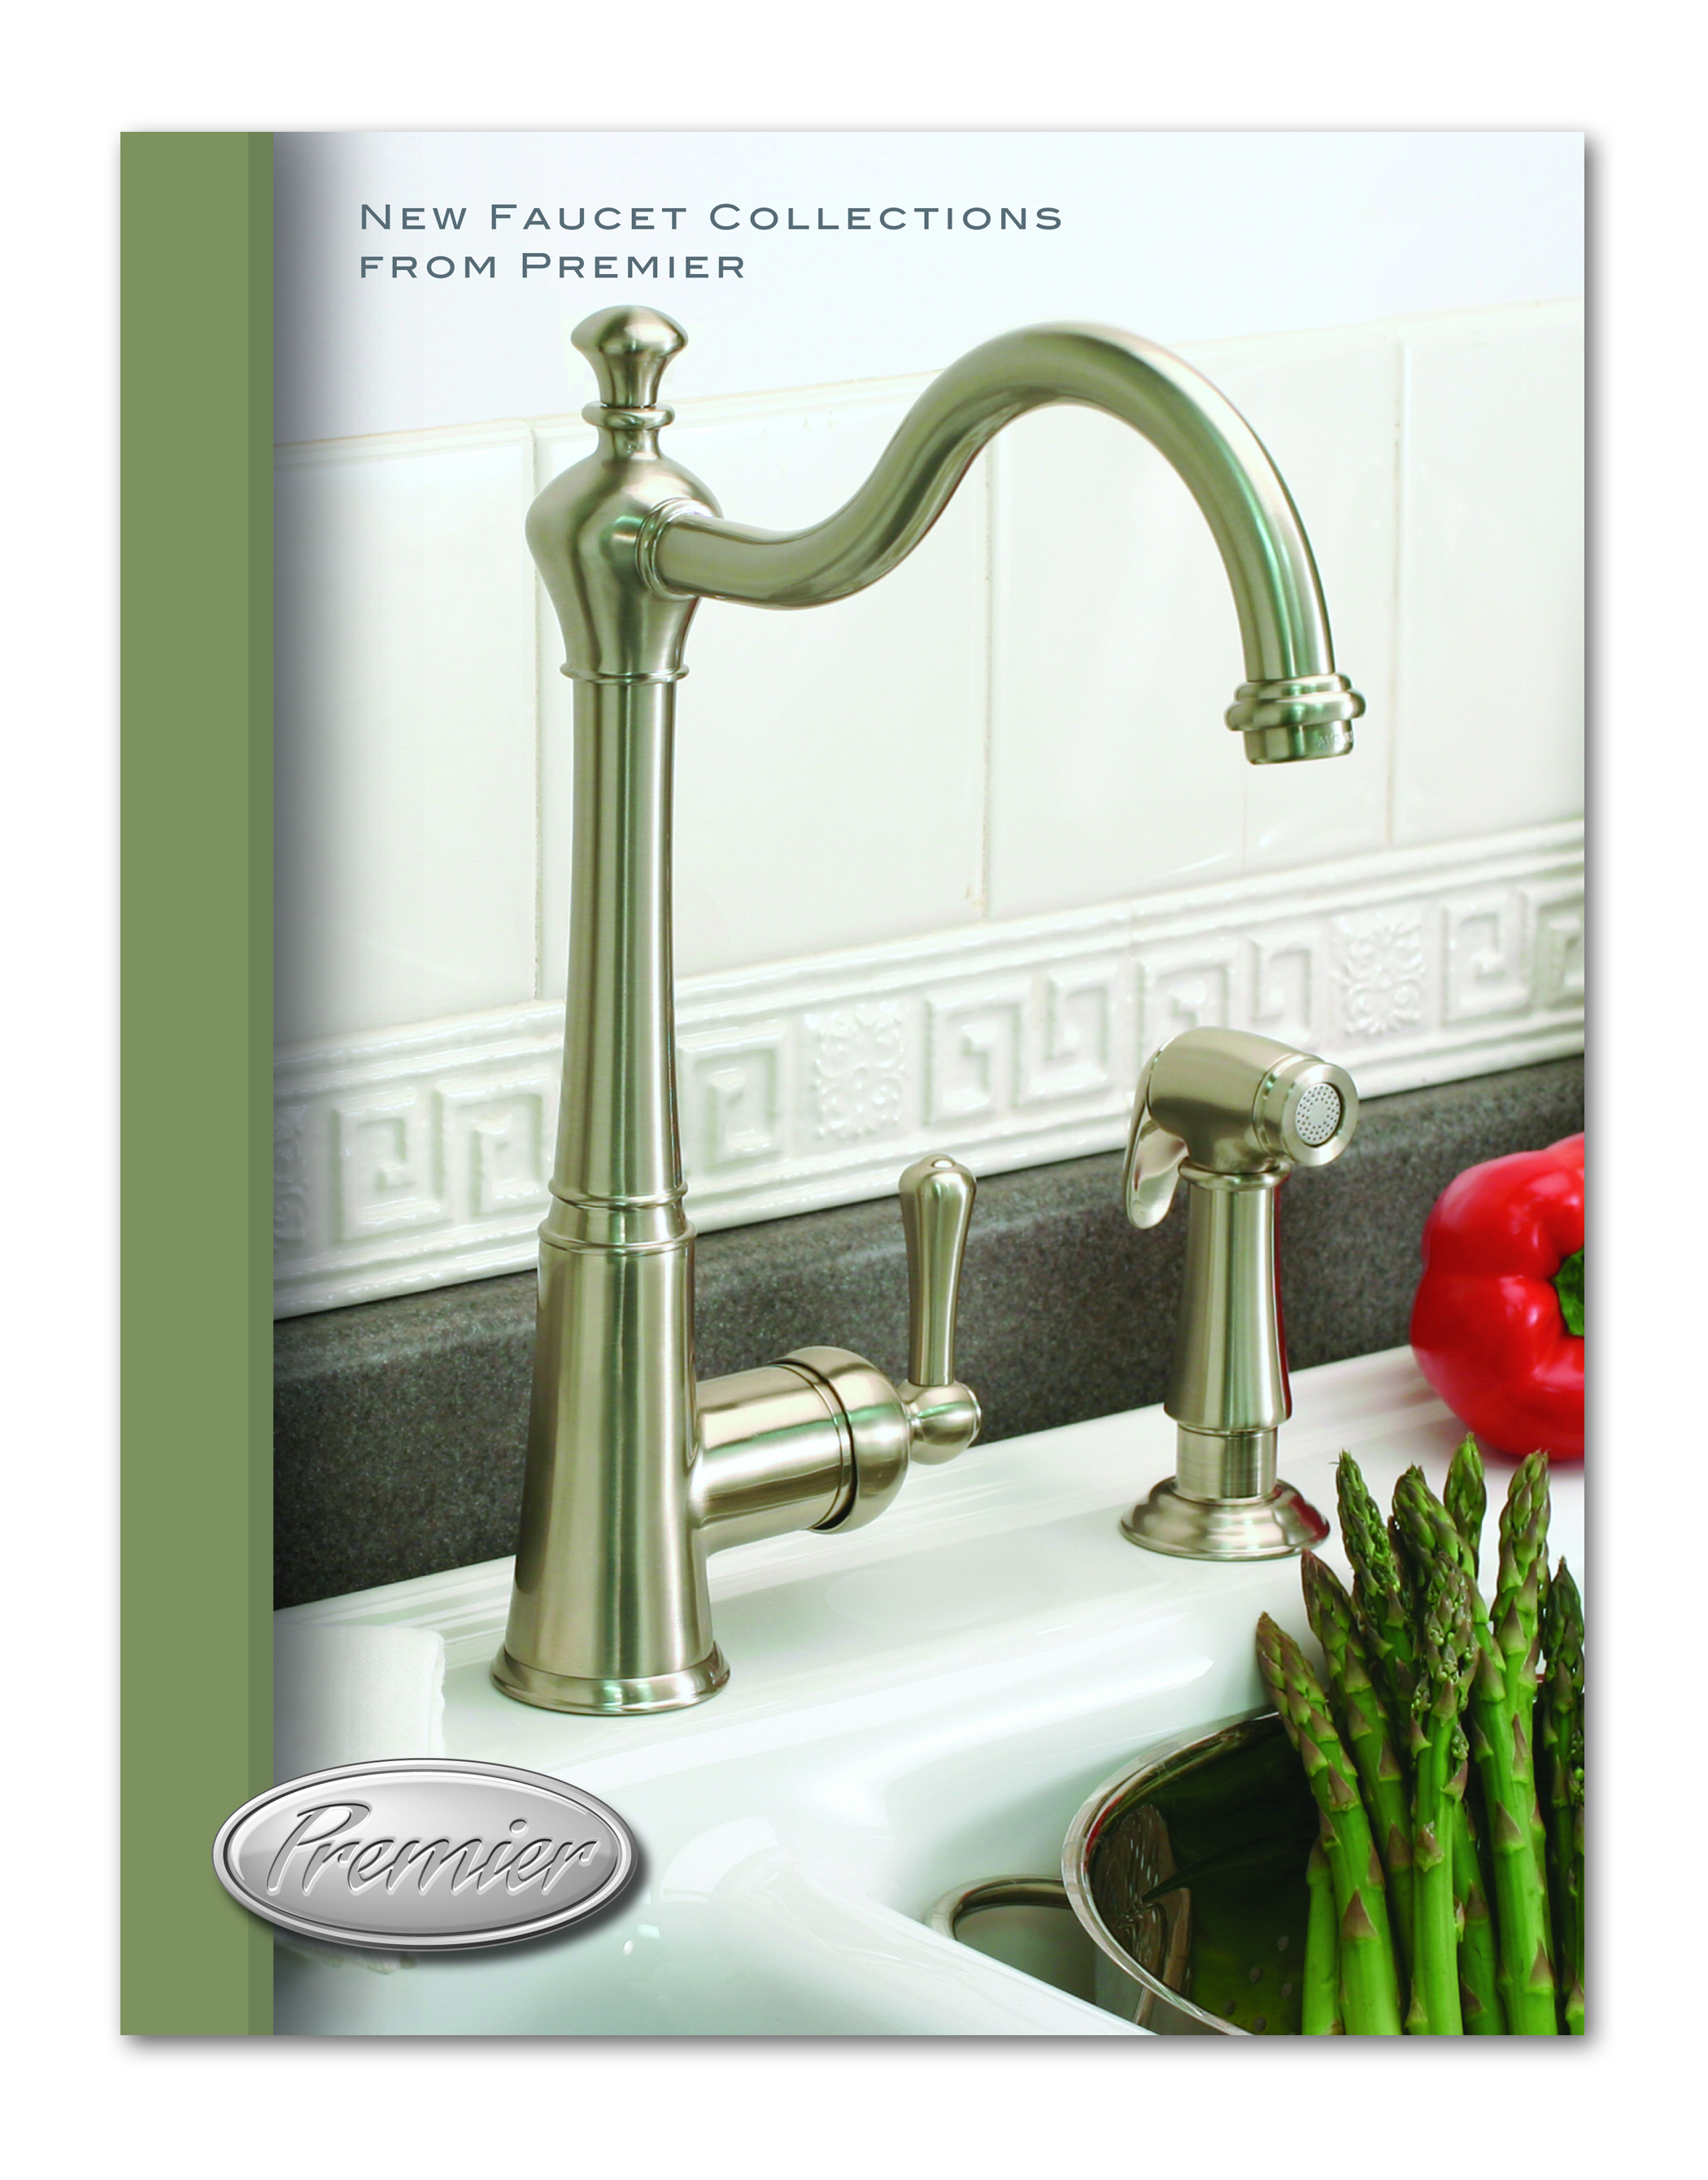 Premier Faucet Introduces New Full-Line Catalog that Features Over ...